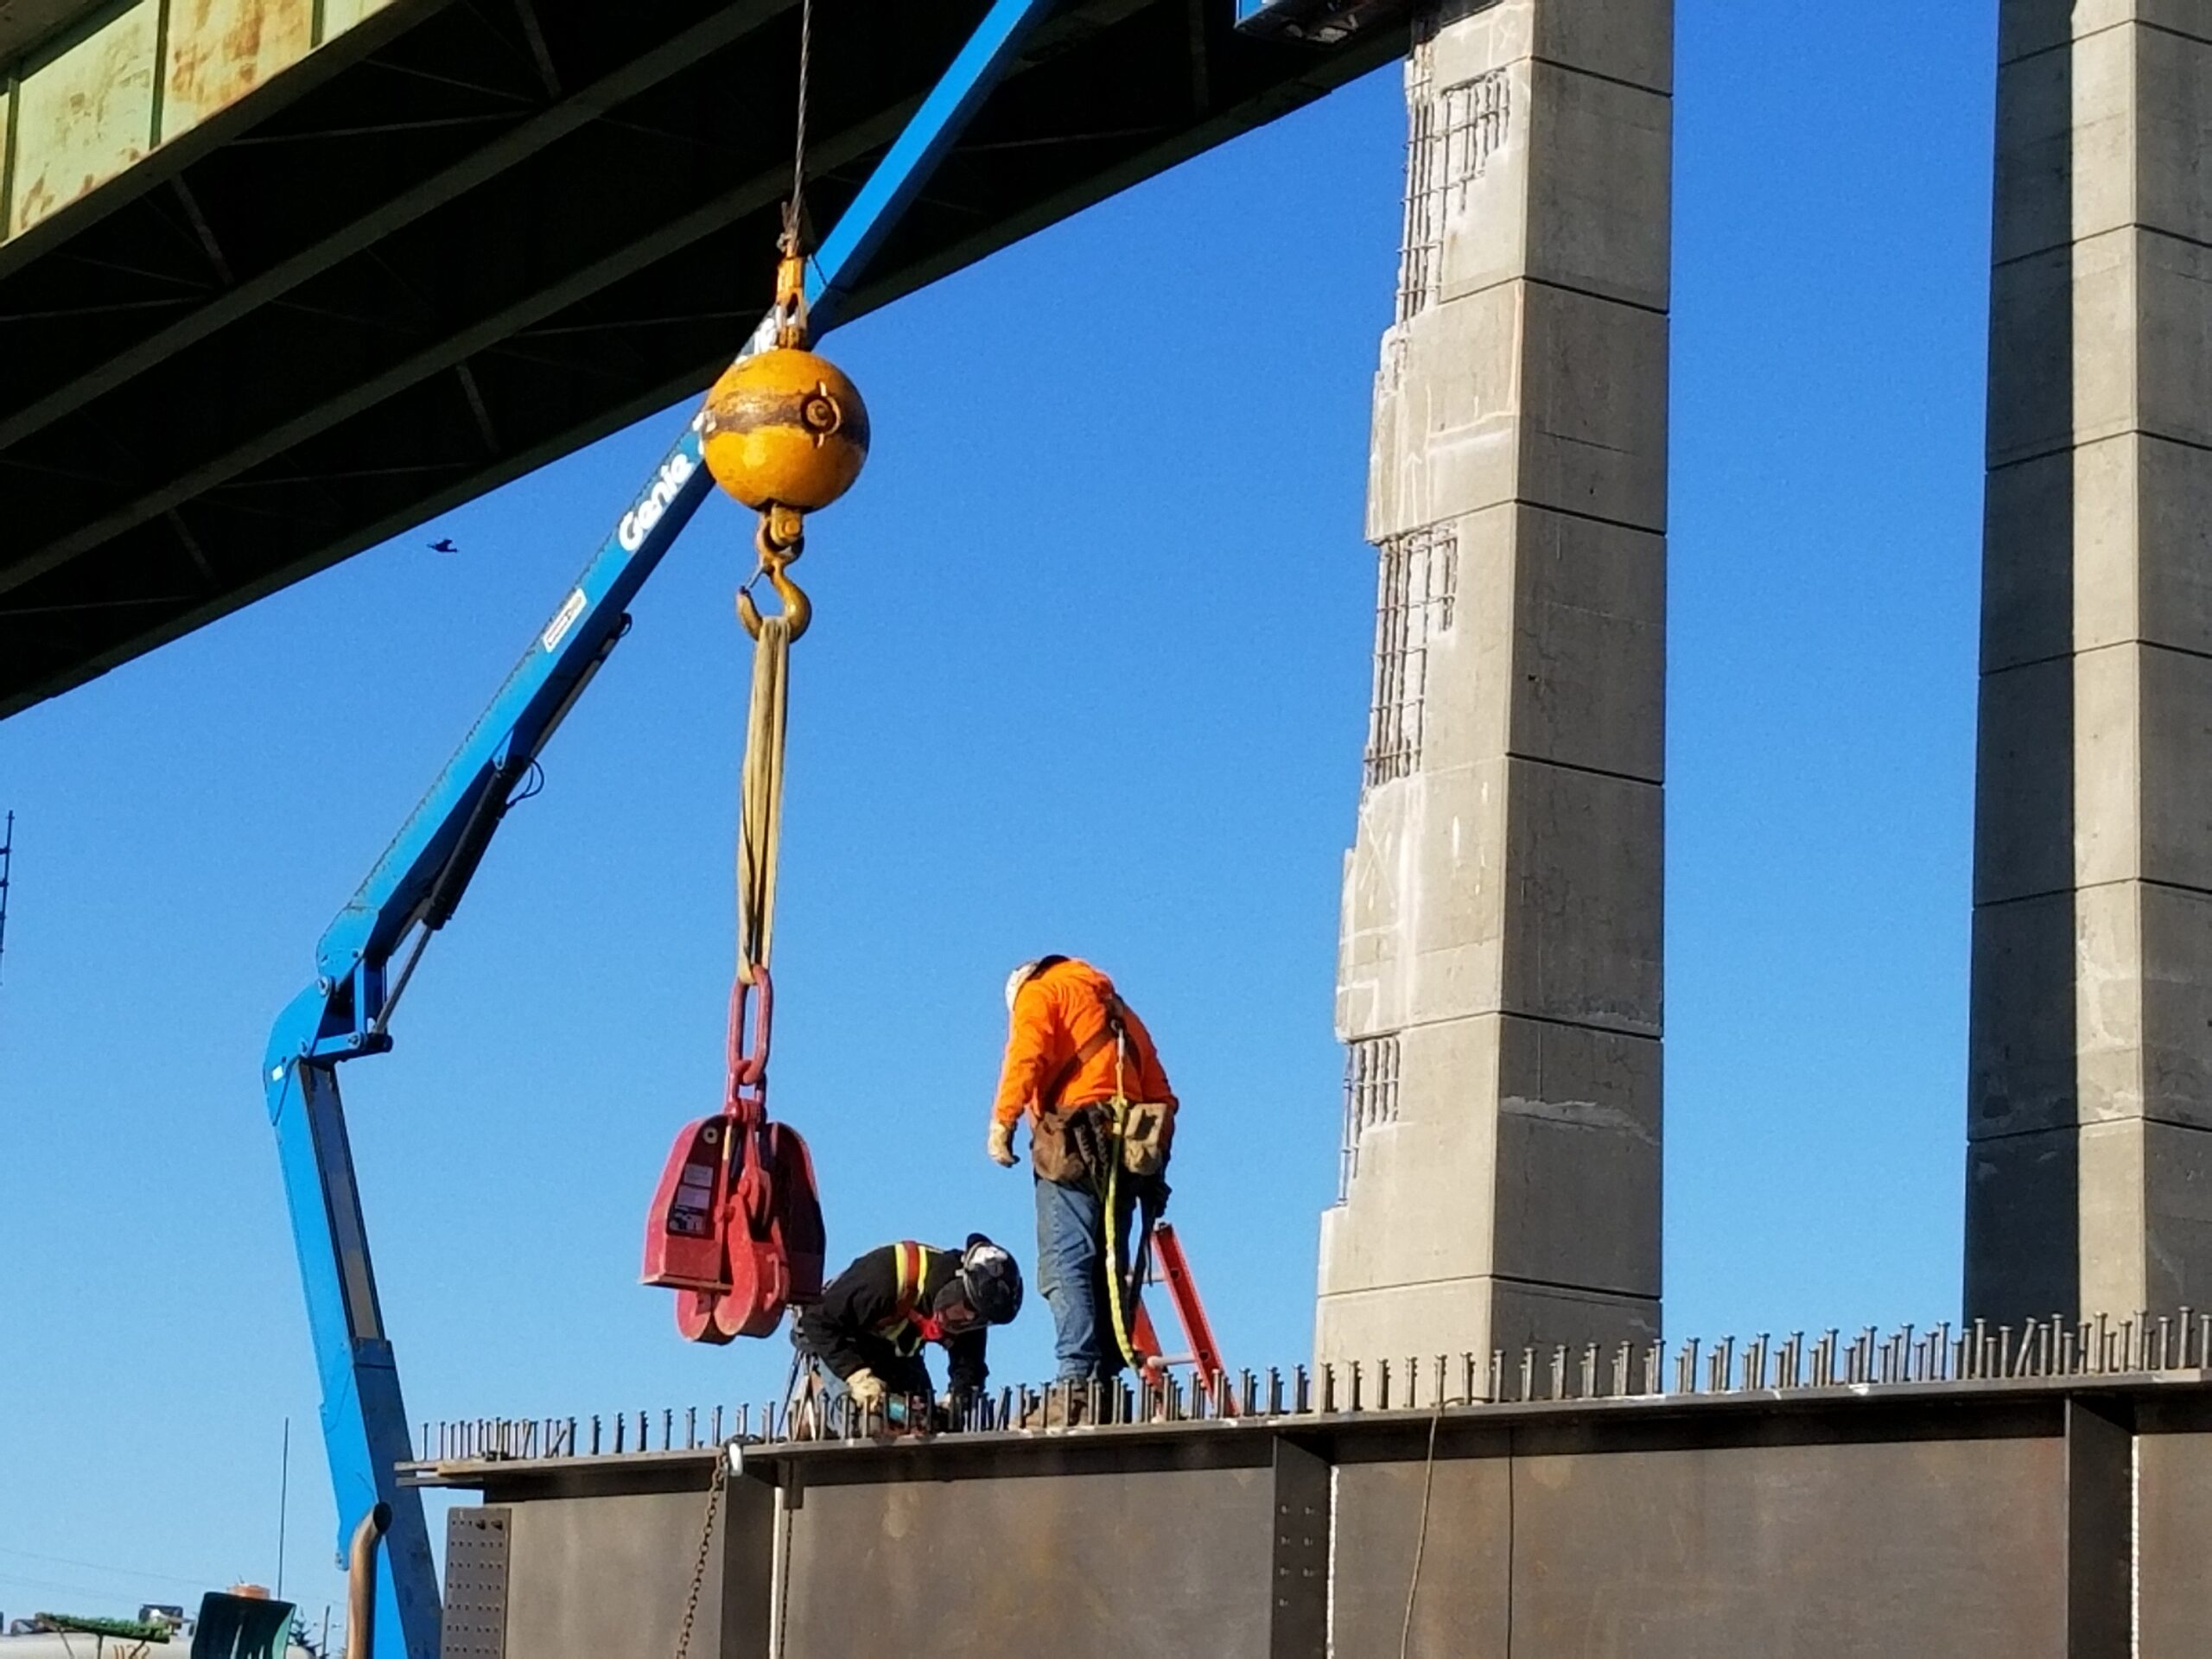 Preparing to attach the Crosby Clamp to lift the girder